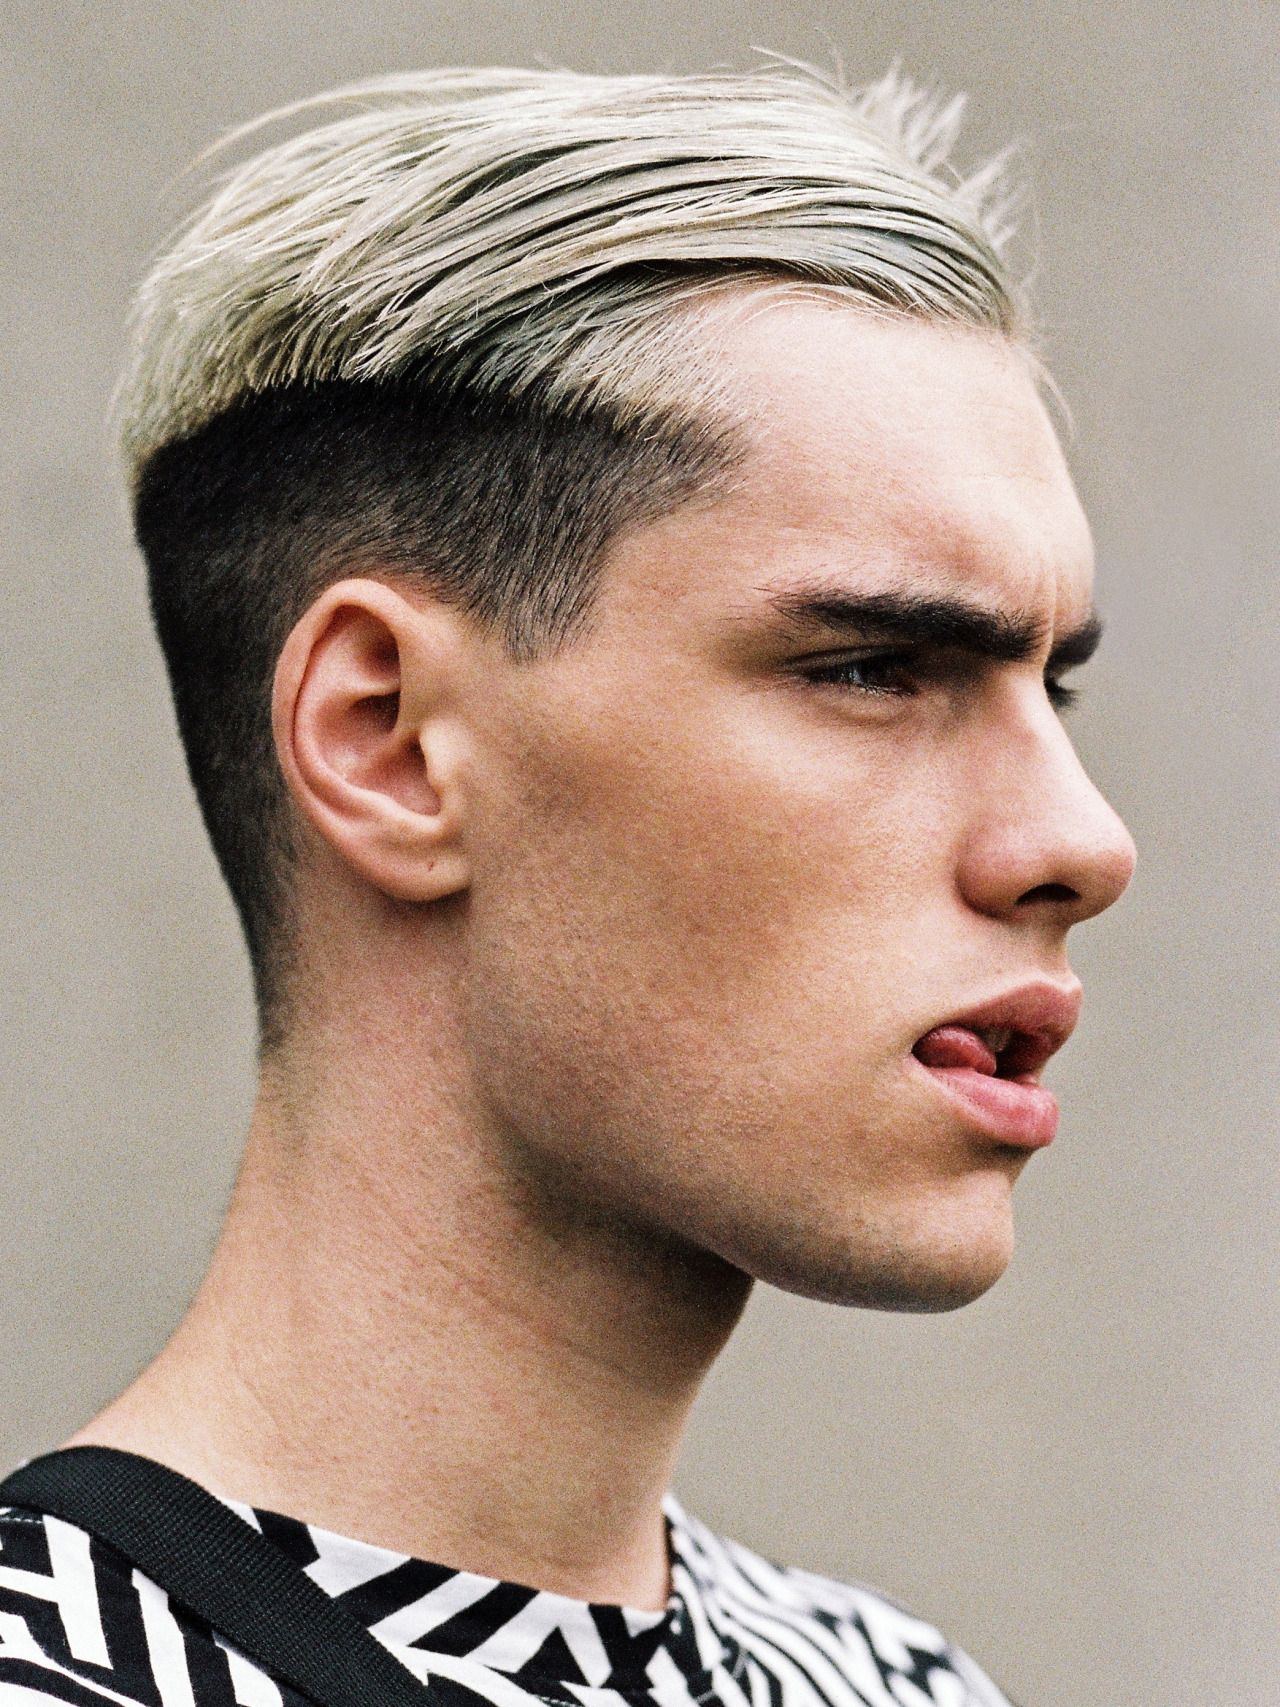 Haircuts for round faces men virginie khateeb i latest work  haircuts  pinterest  haircut styles